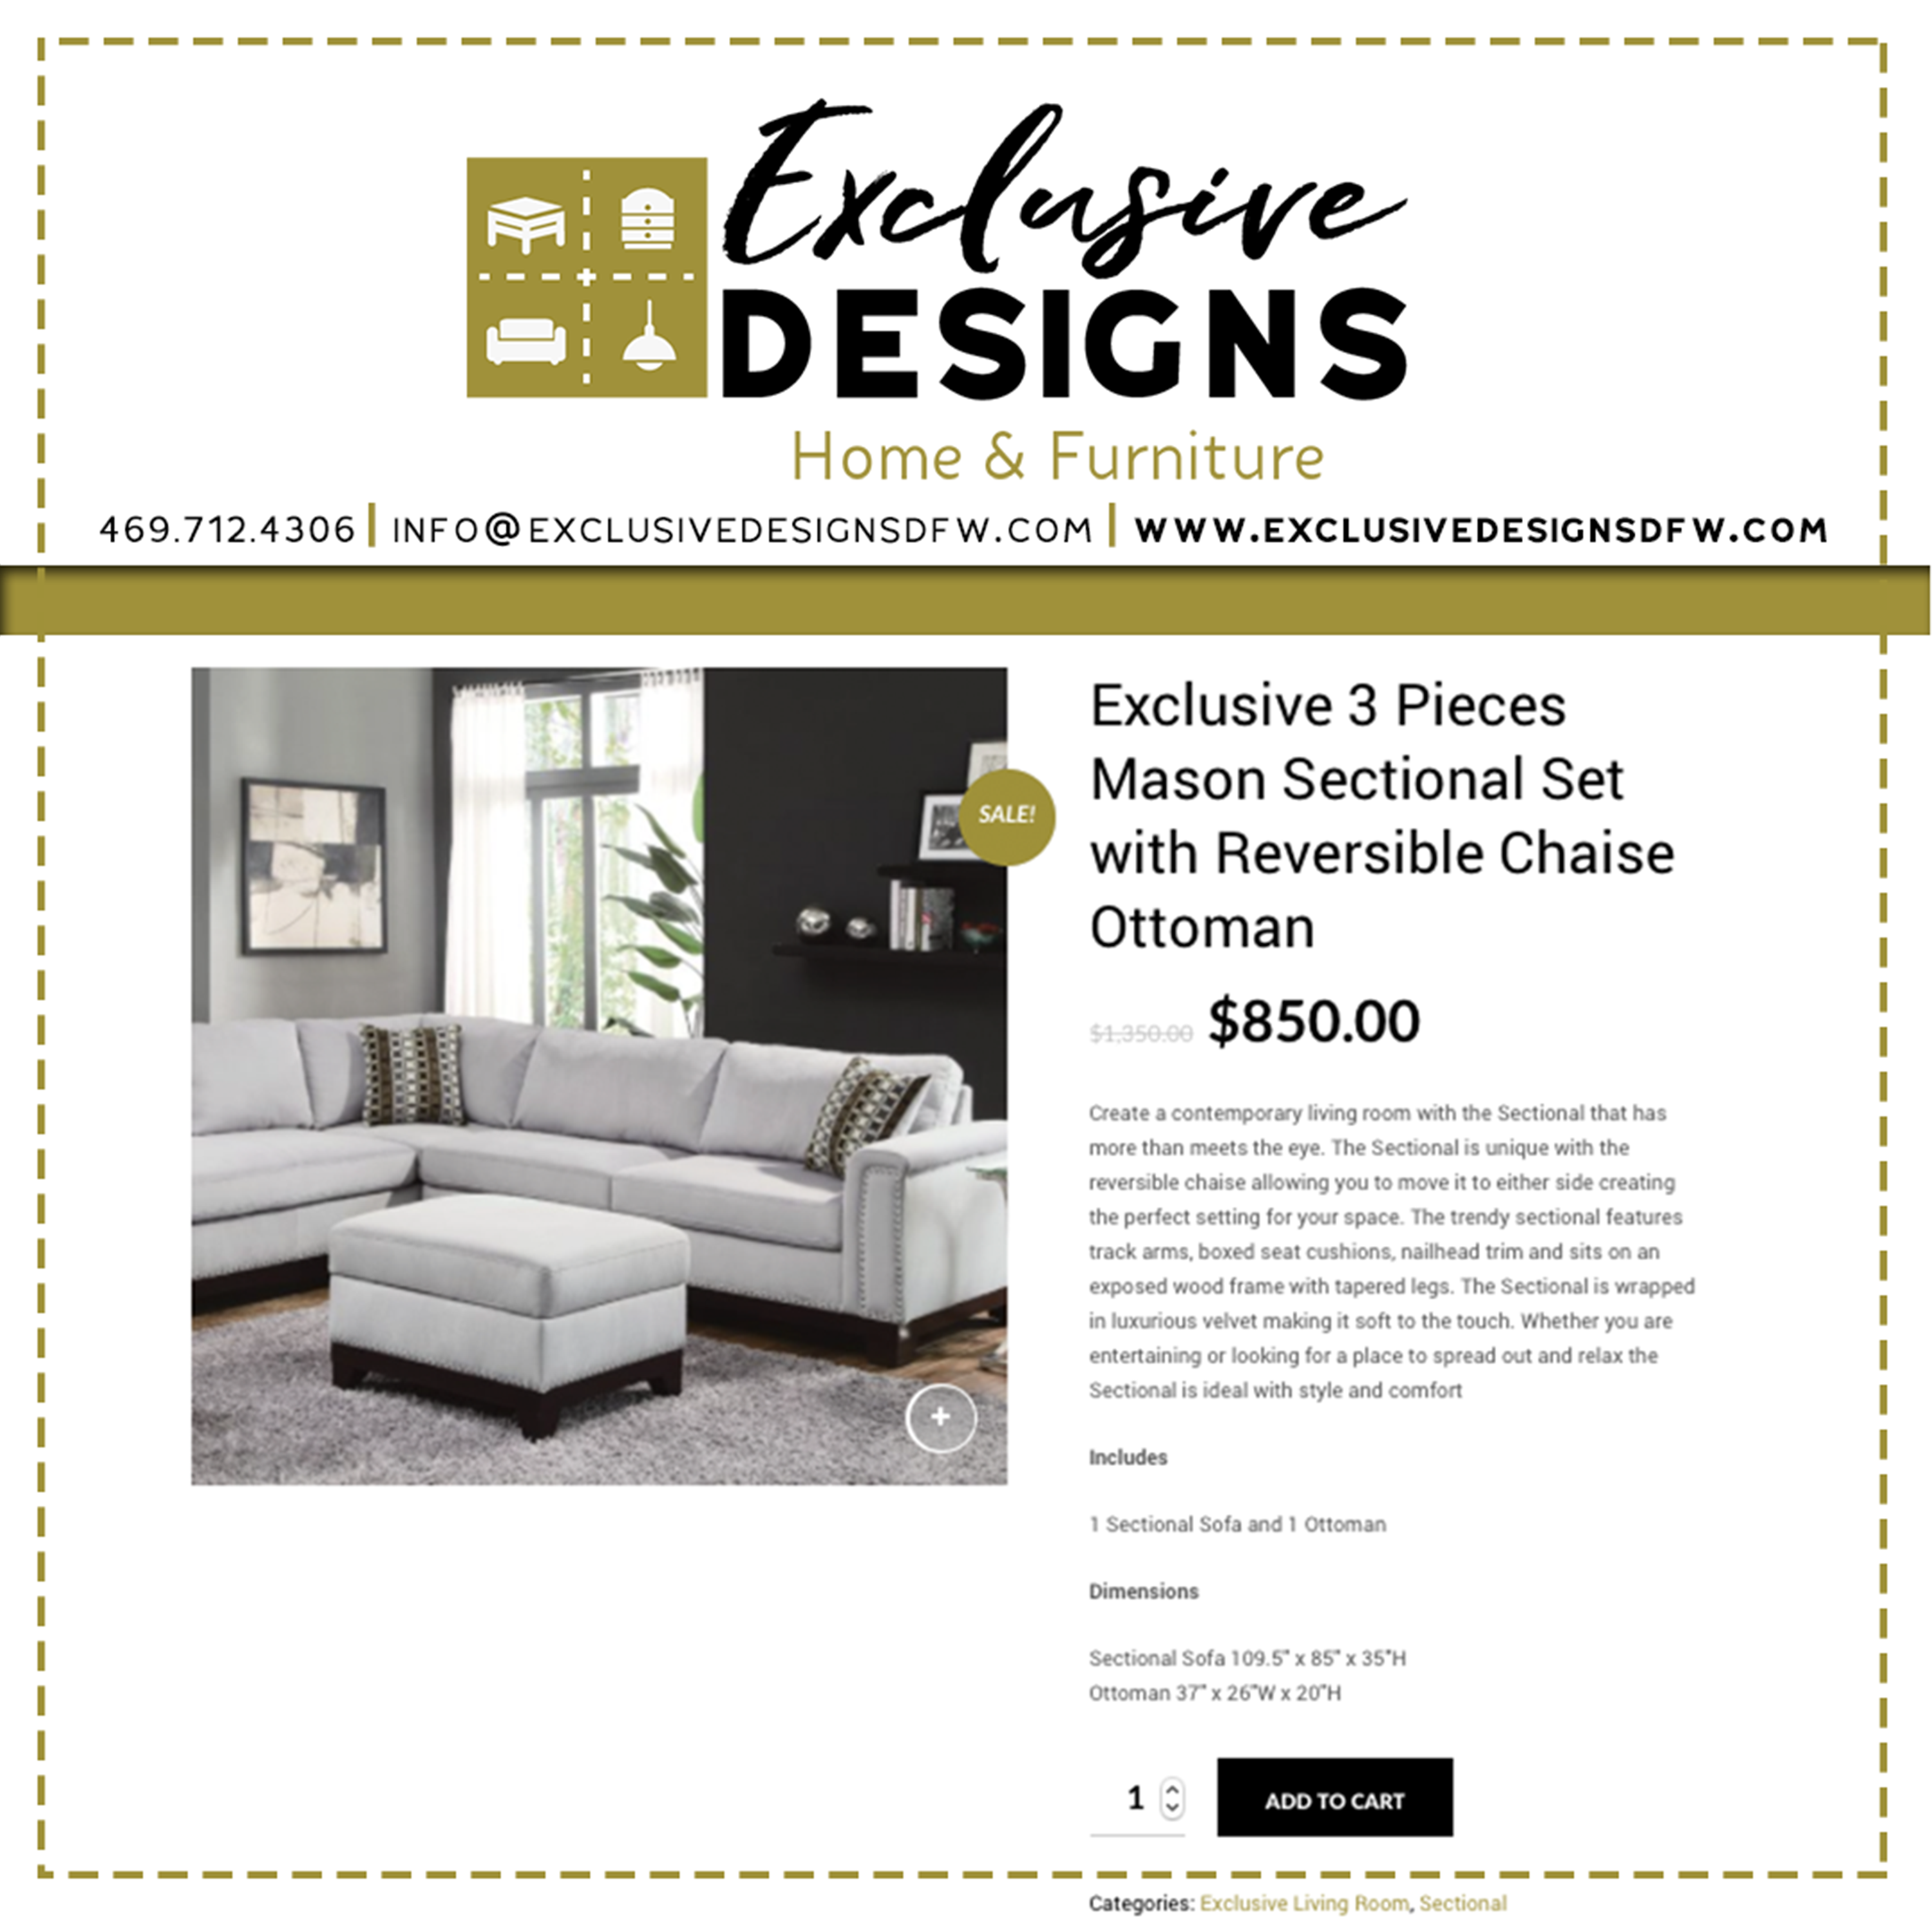 Pin by Exclusive Designs on Exclusive Designs Furniture